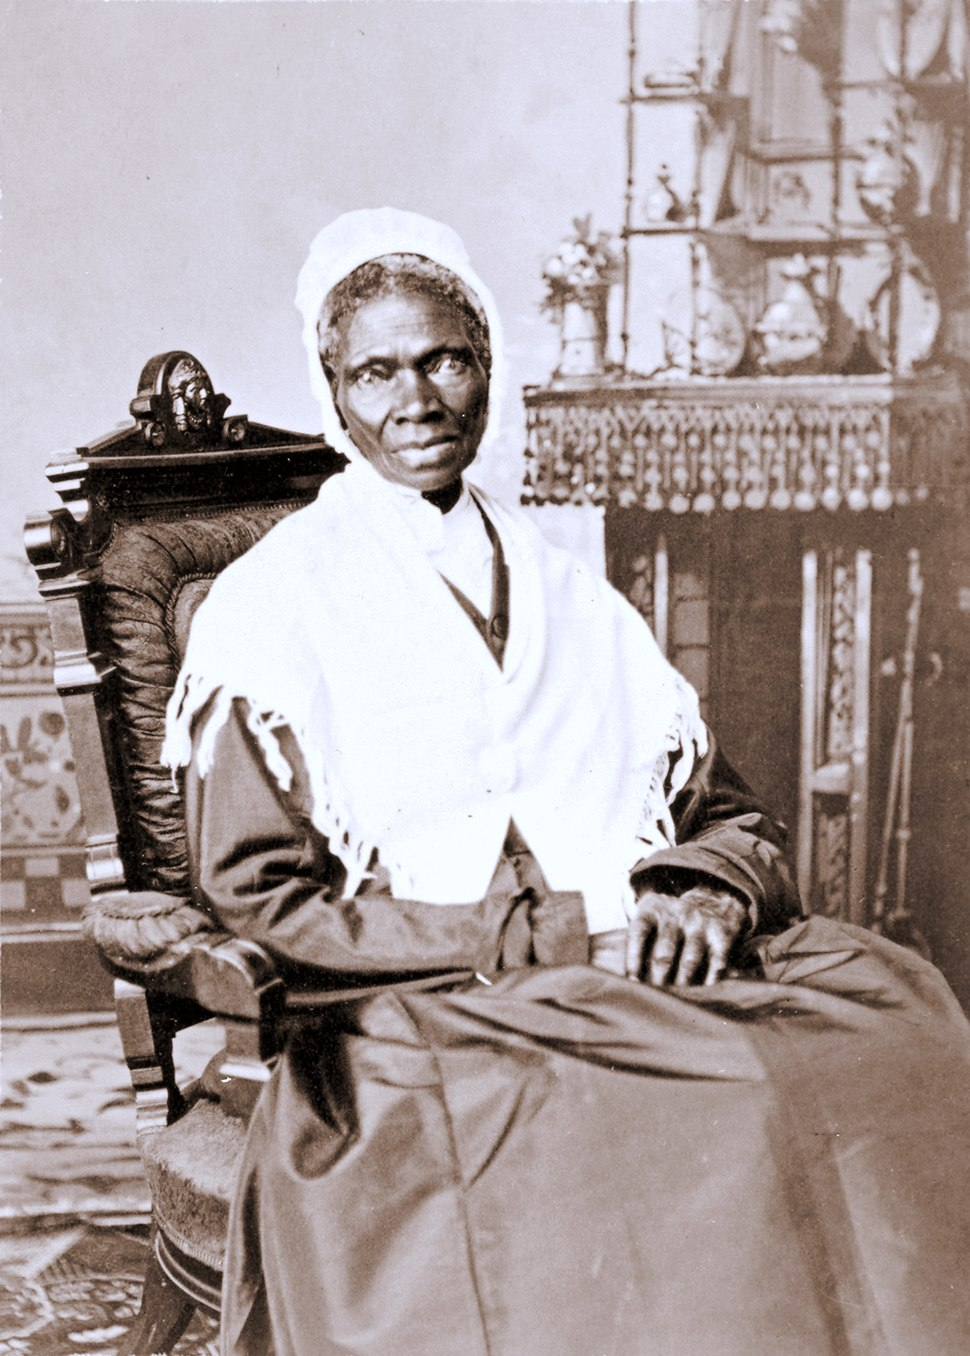 Sojourner truth c1870